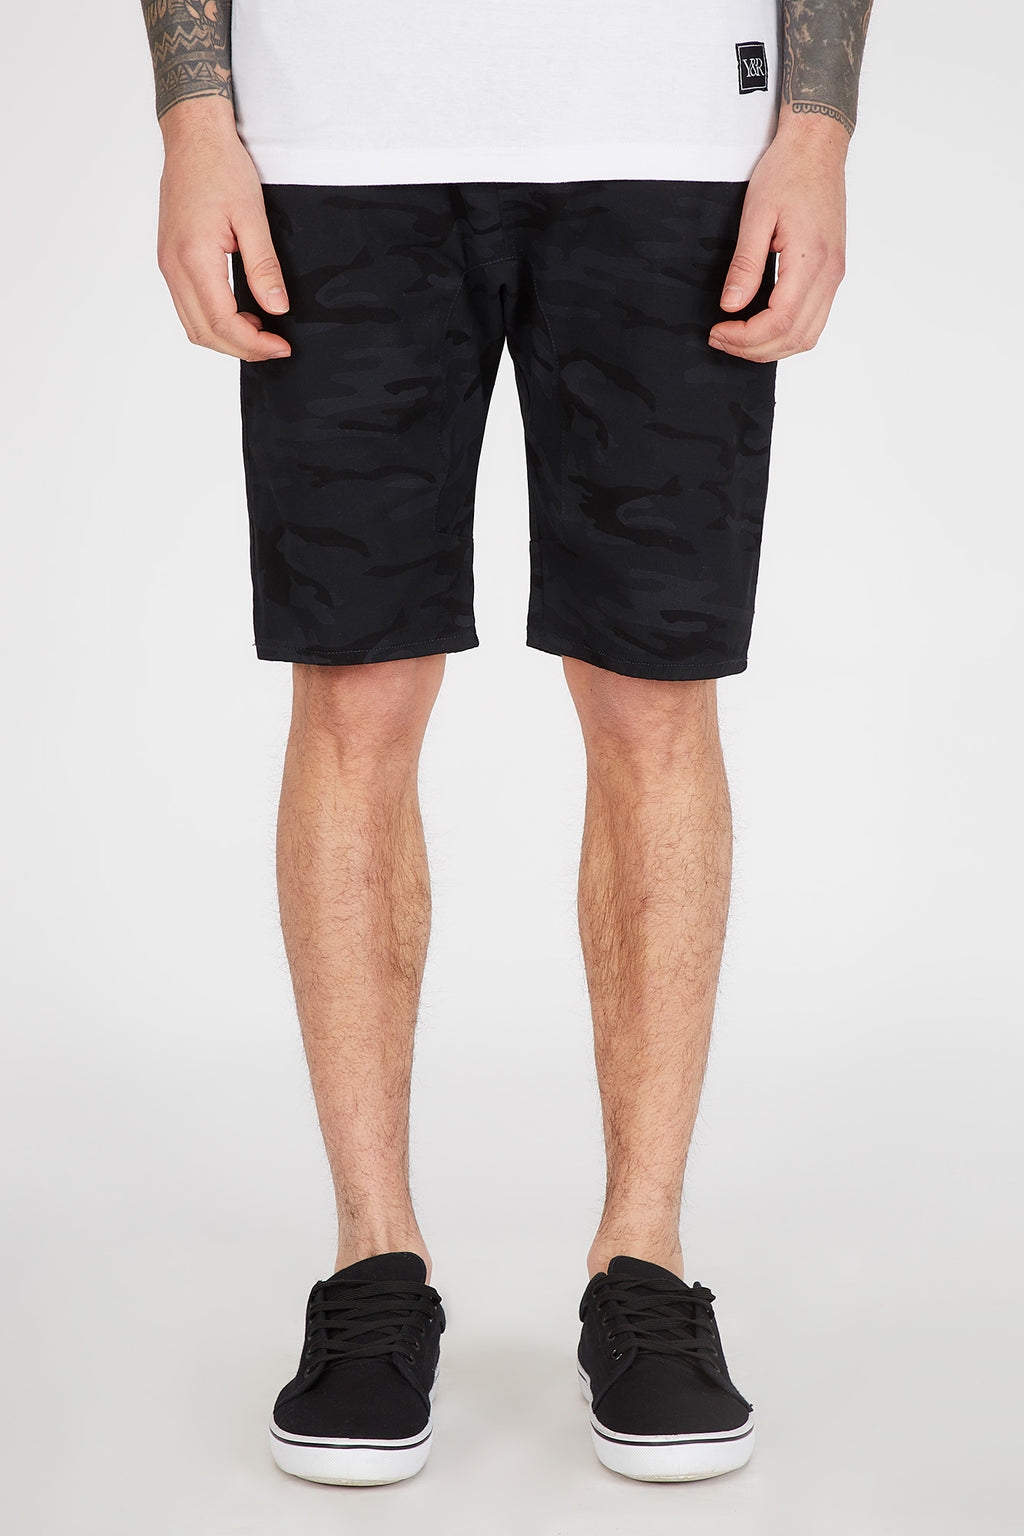 West49 Mens Black Camo Jogger Short